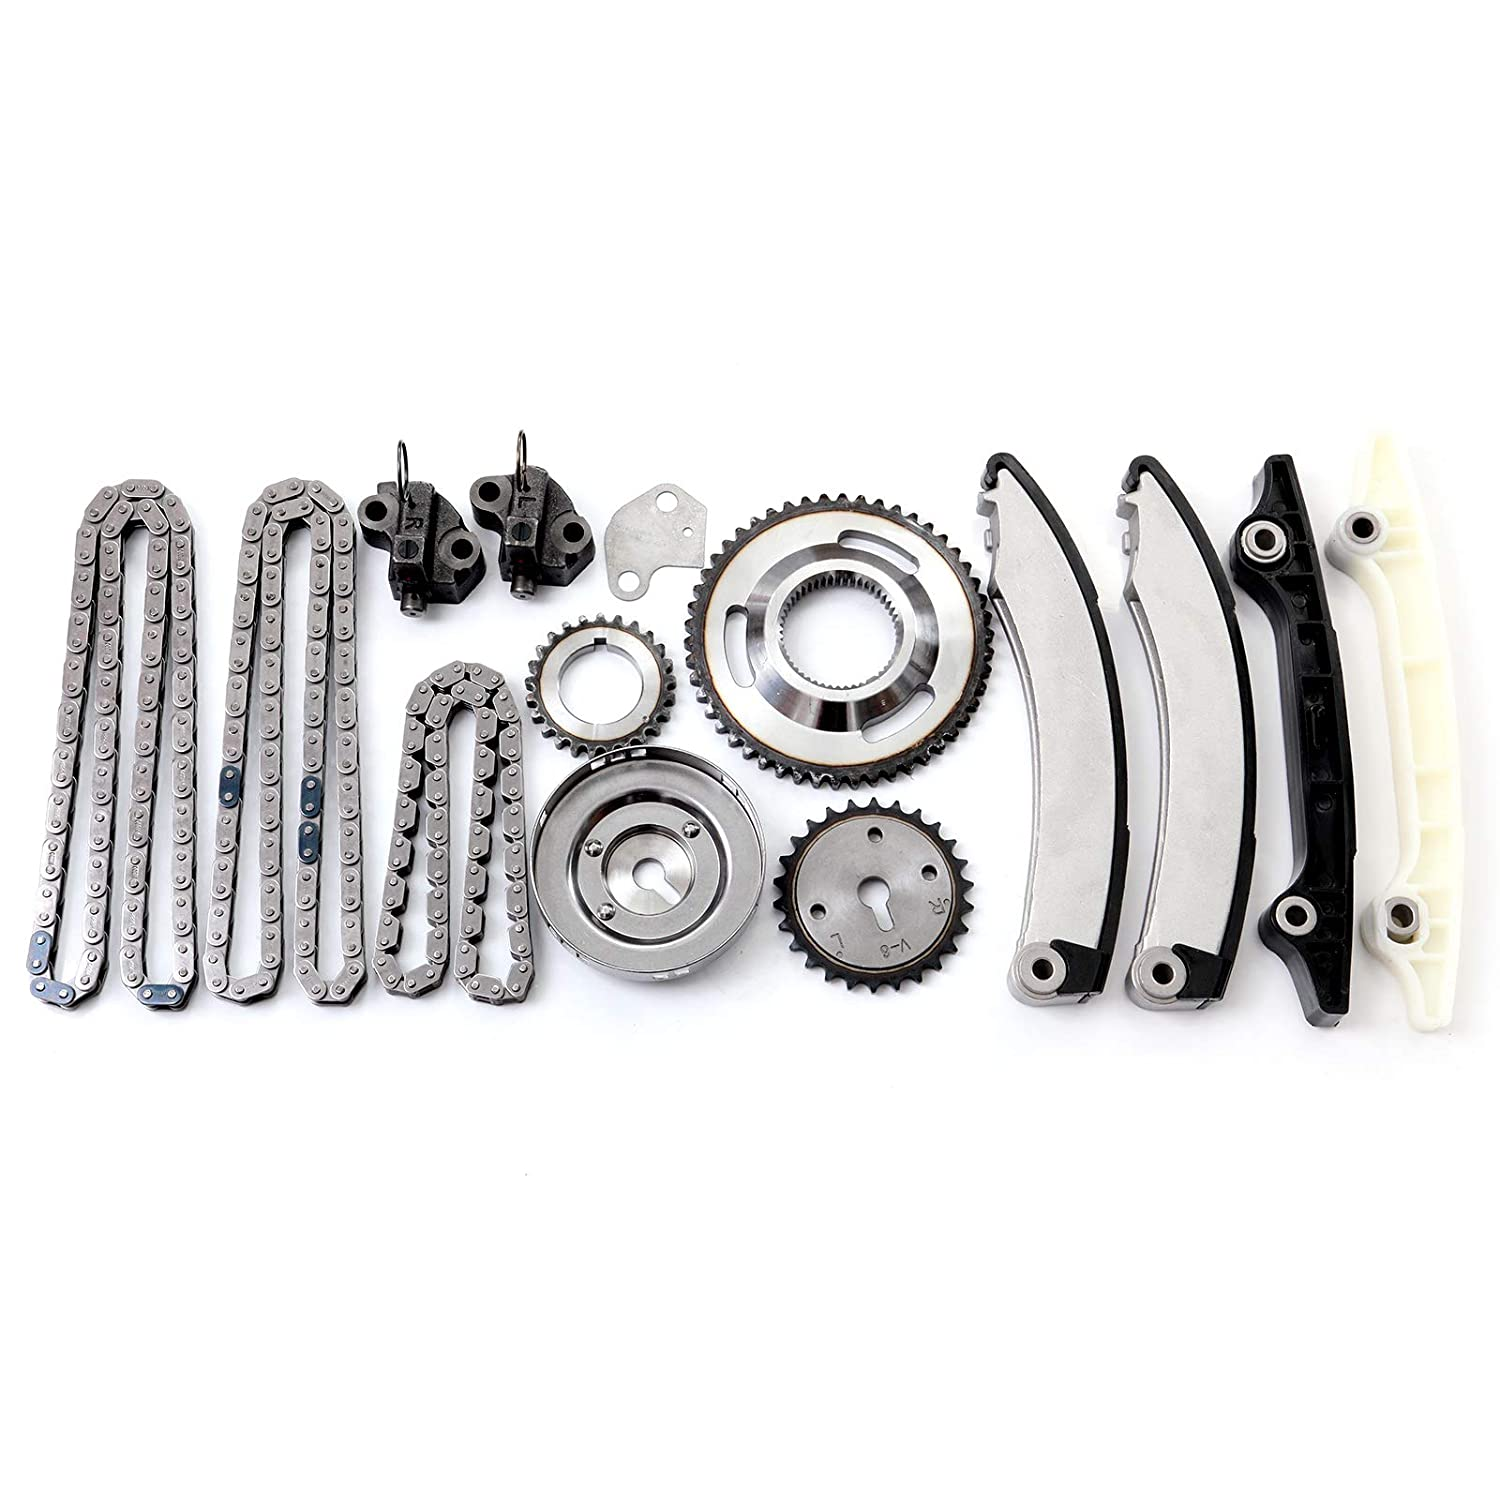 OCPTY TK1105 Timing Chain Kits Fits with Tensioner 2002 2003 Dodge Ram 1500 2002 2003 Jeep Liberty